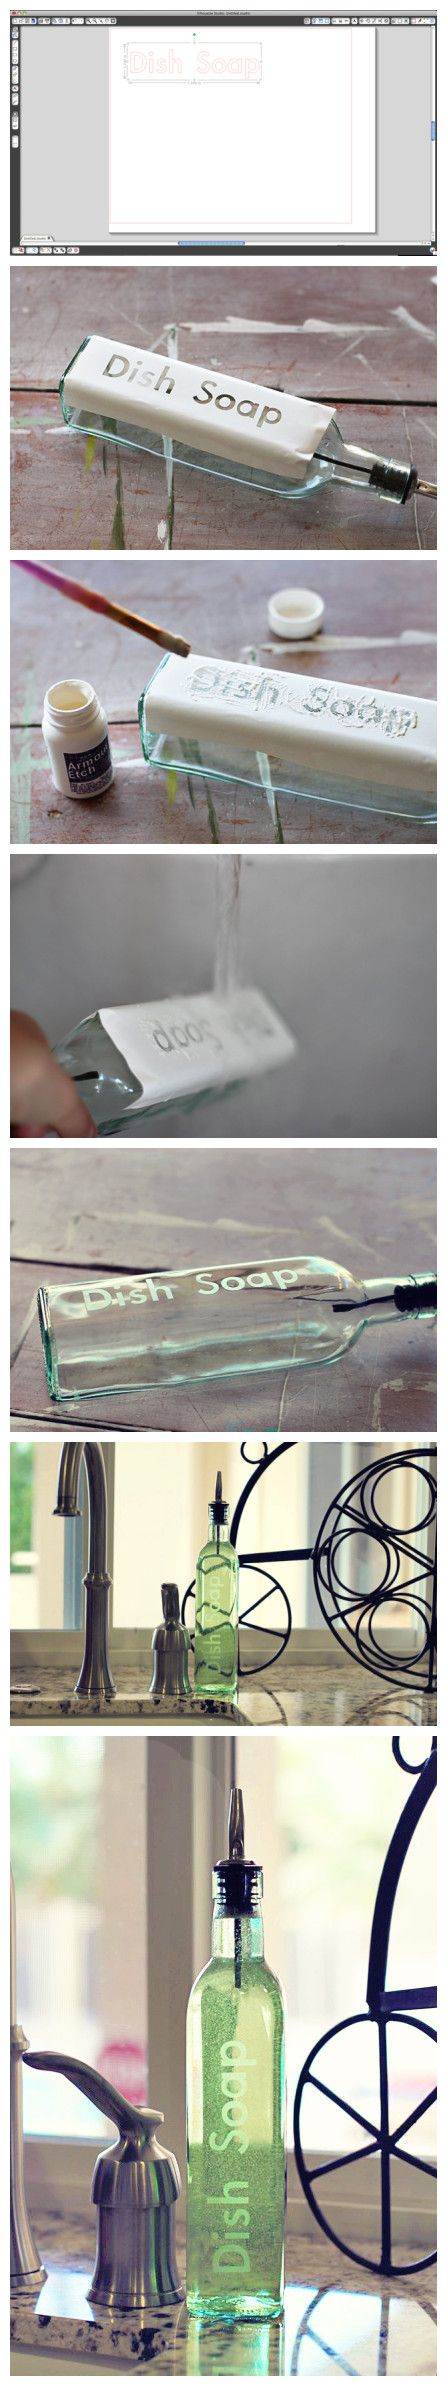 Lettering on glass bottles: Plastic Bottle, Glasses Etchings, Olives Oil, Cute Ideas, Wine Bottle, Glasses Bottle, Soaps Dispenser, Dishes Soaps, Soaps Bottle